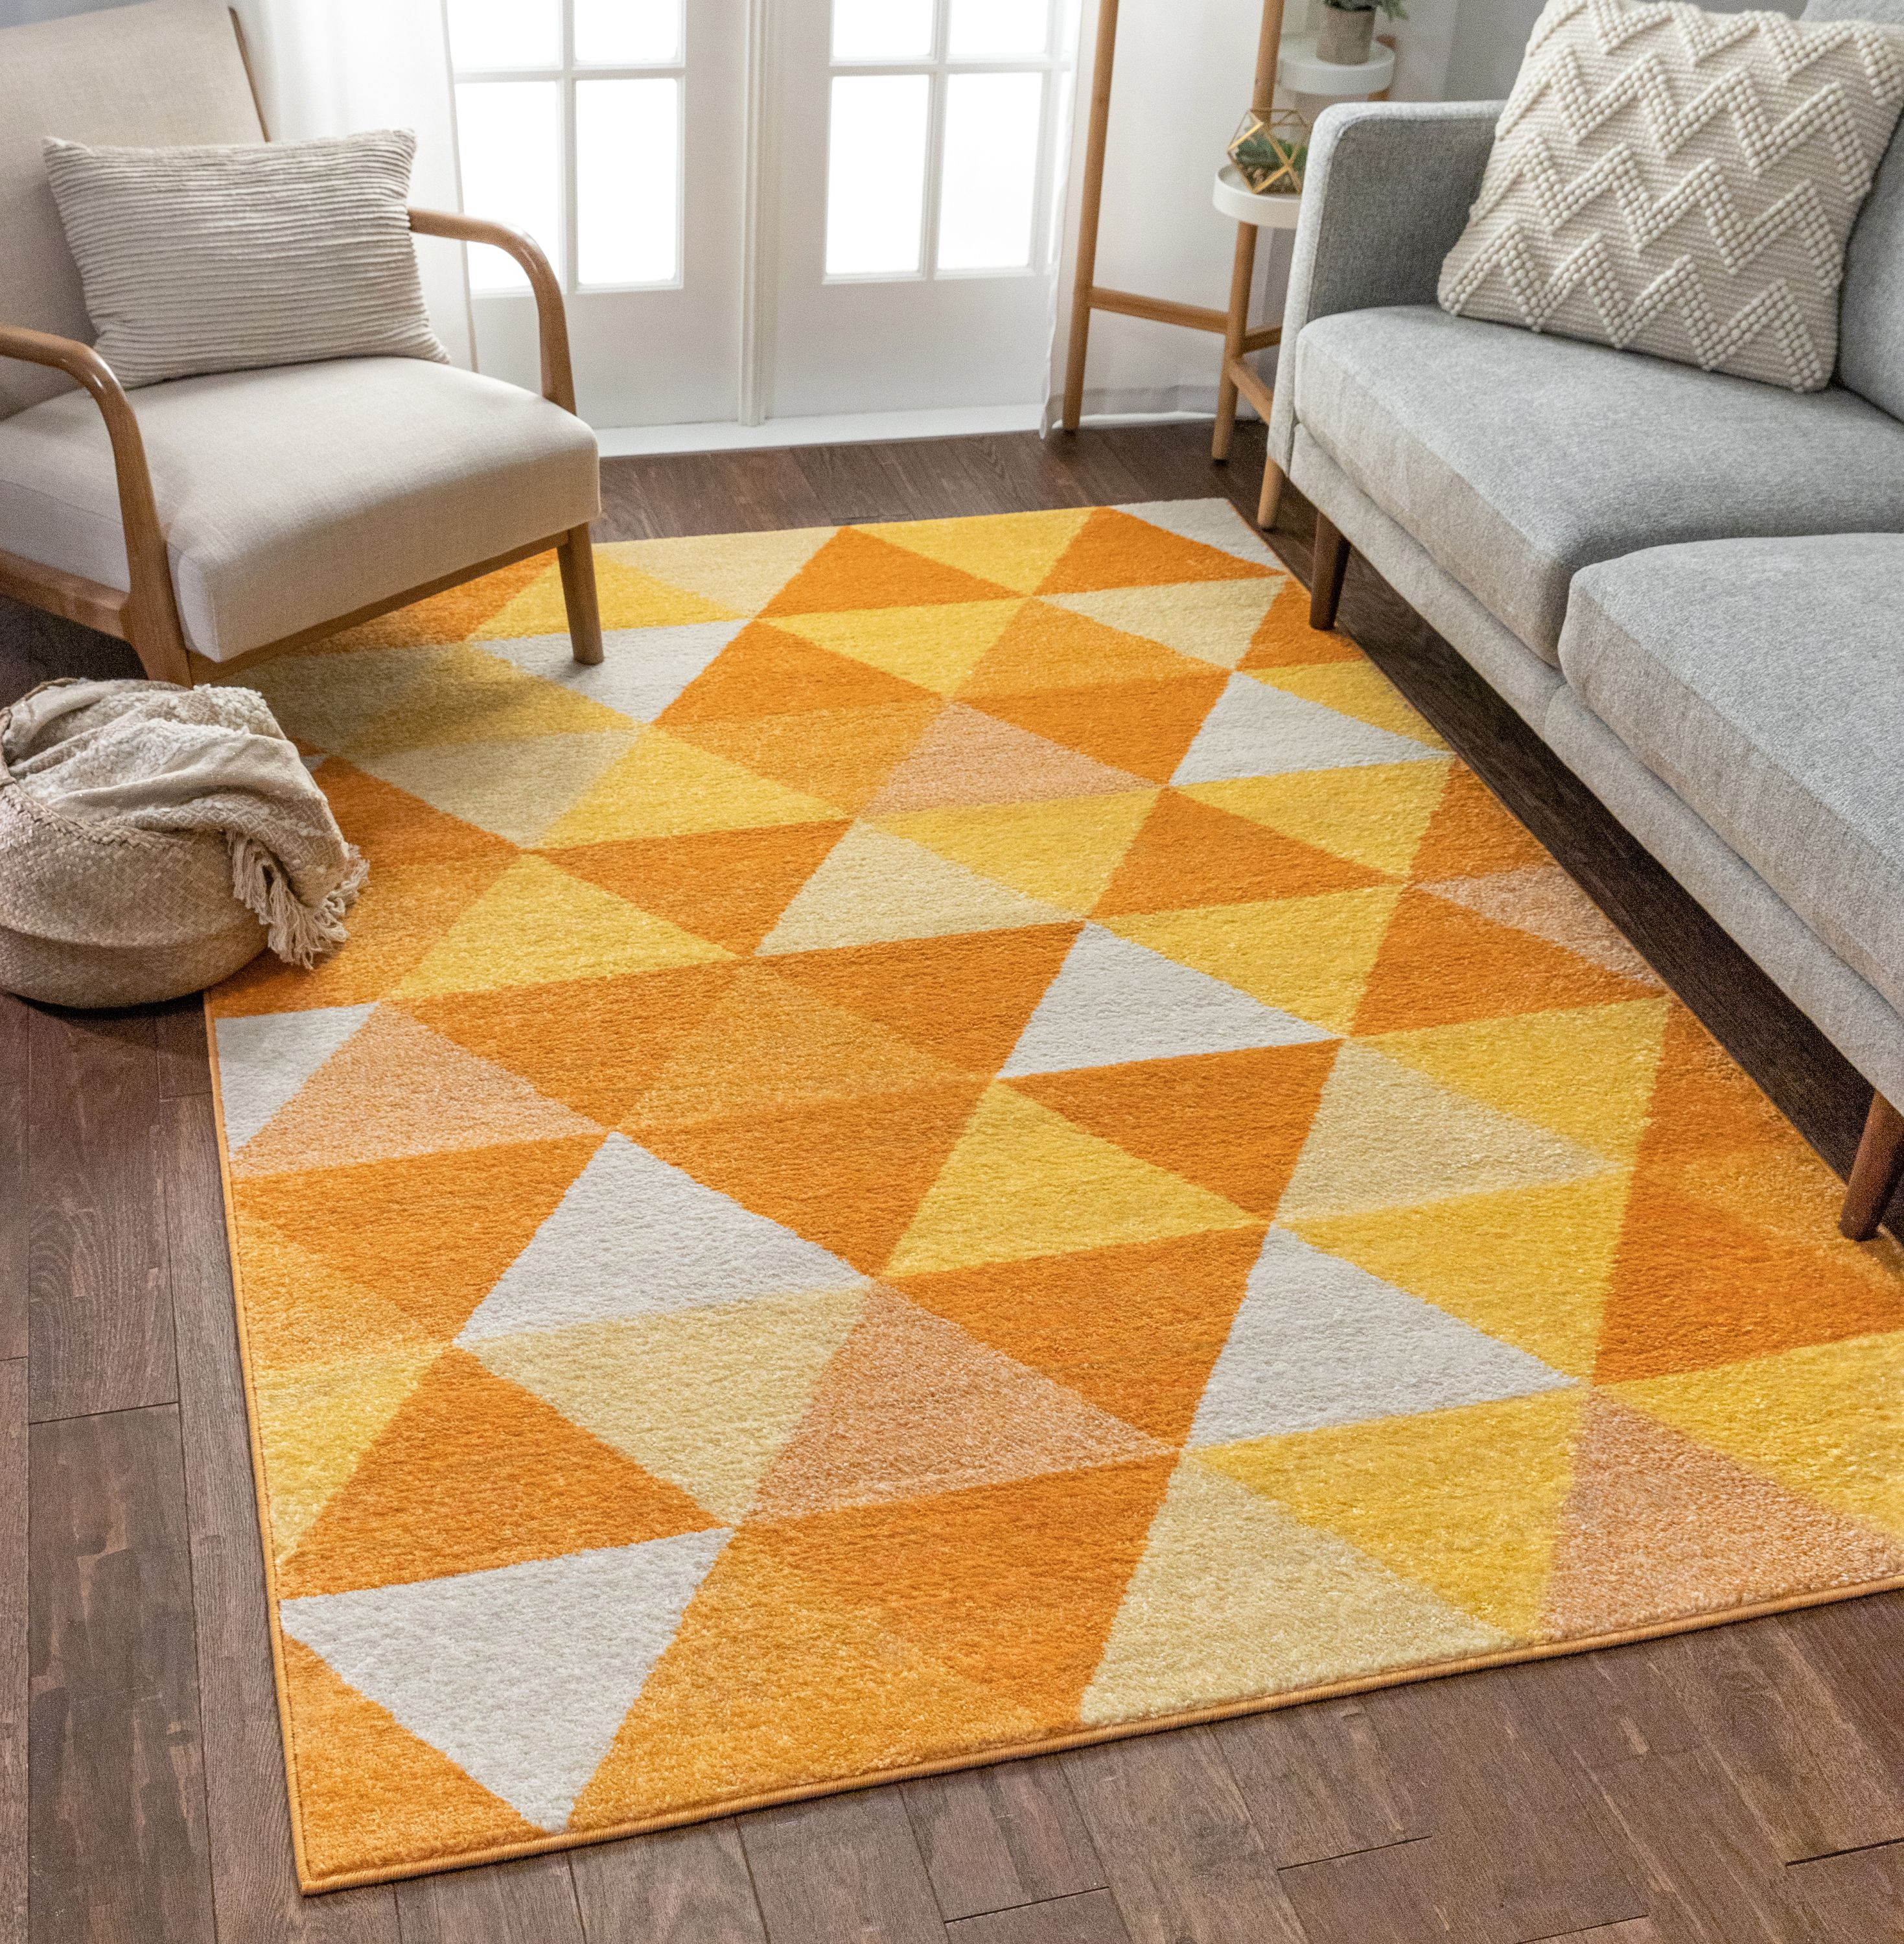 Isometry Orange Yellow Modern Geometric Triangle Pattern 3x5 3 3 X 5 Area Rug Soft Shed Free Easy To Clean Stain Resistant Walmart Com Walmart Com